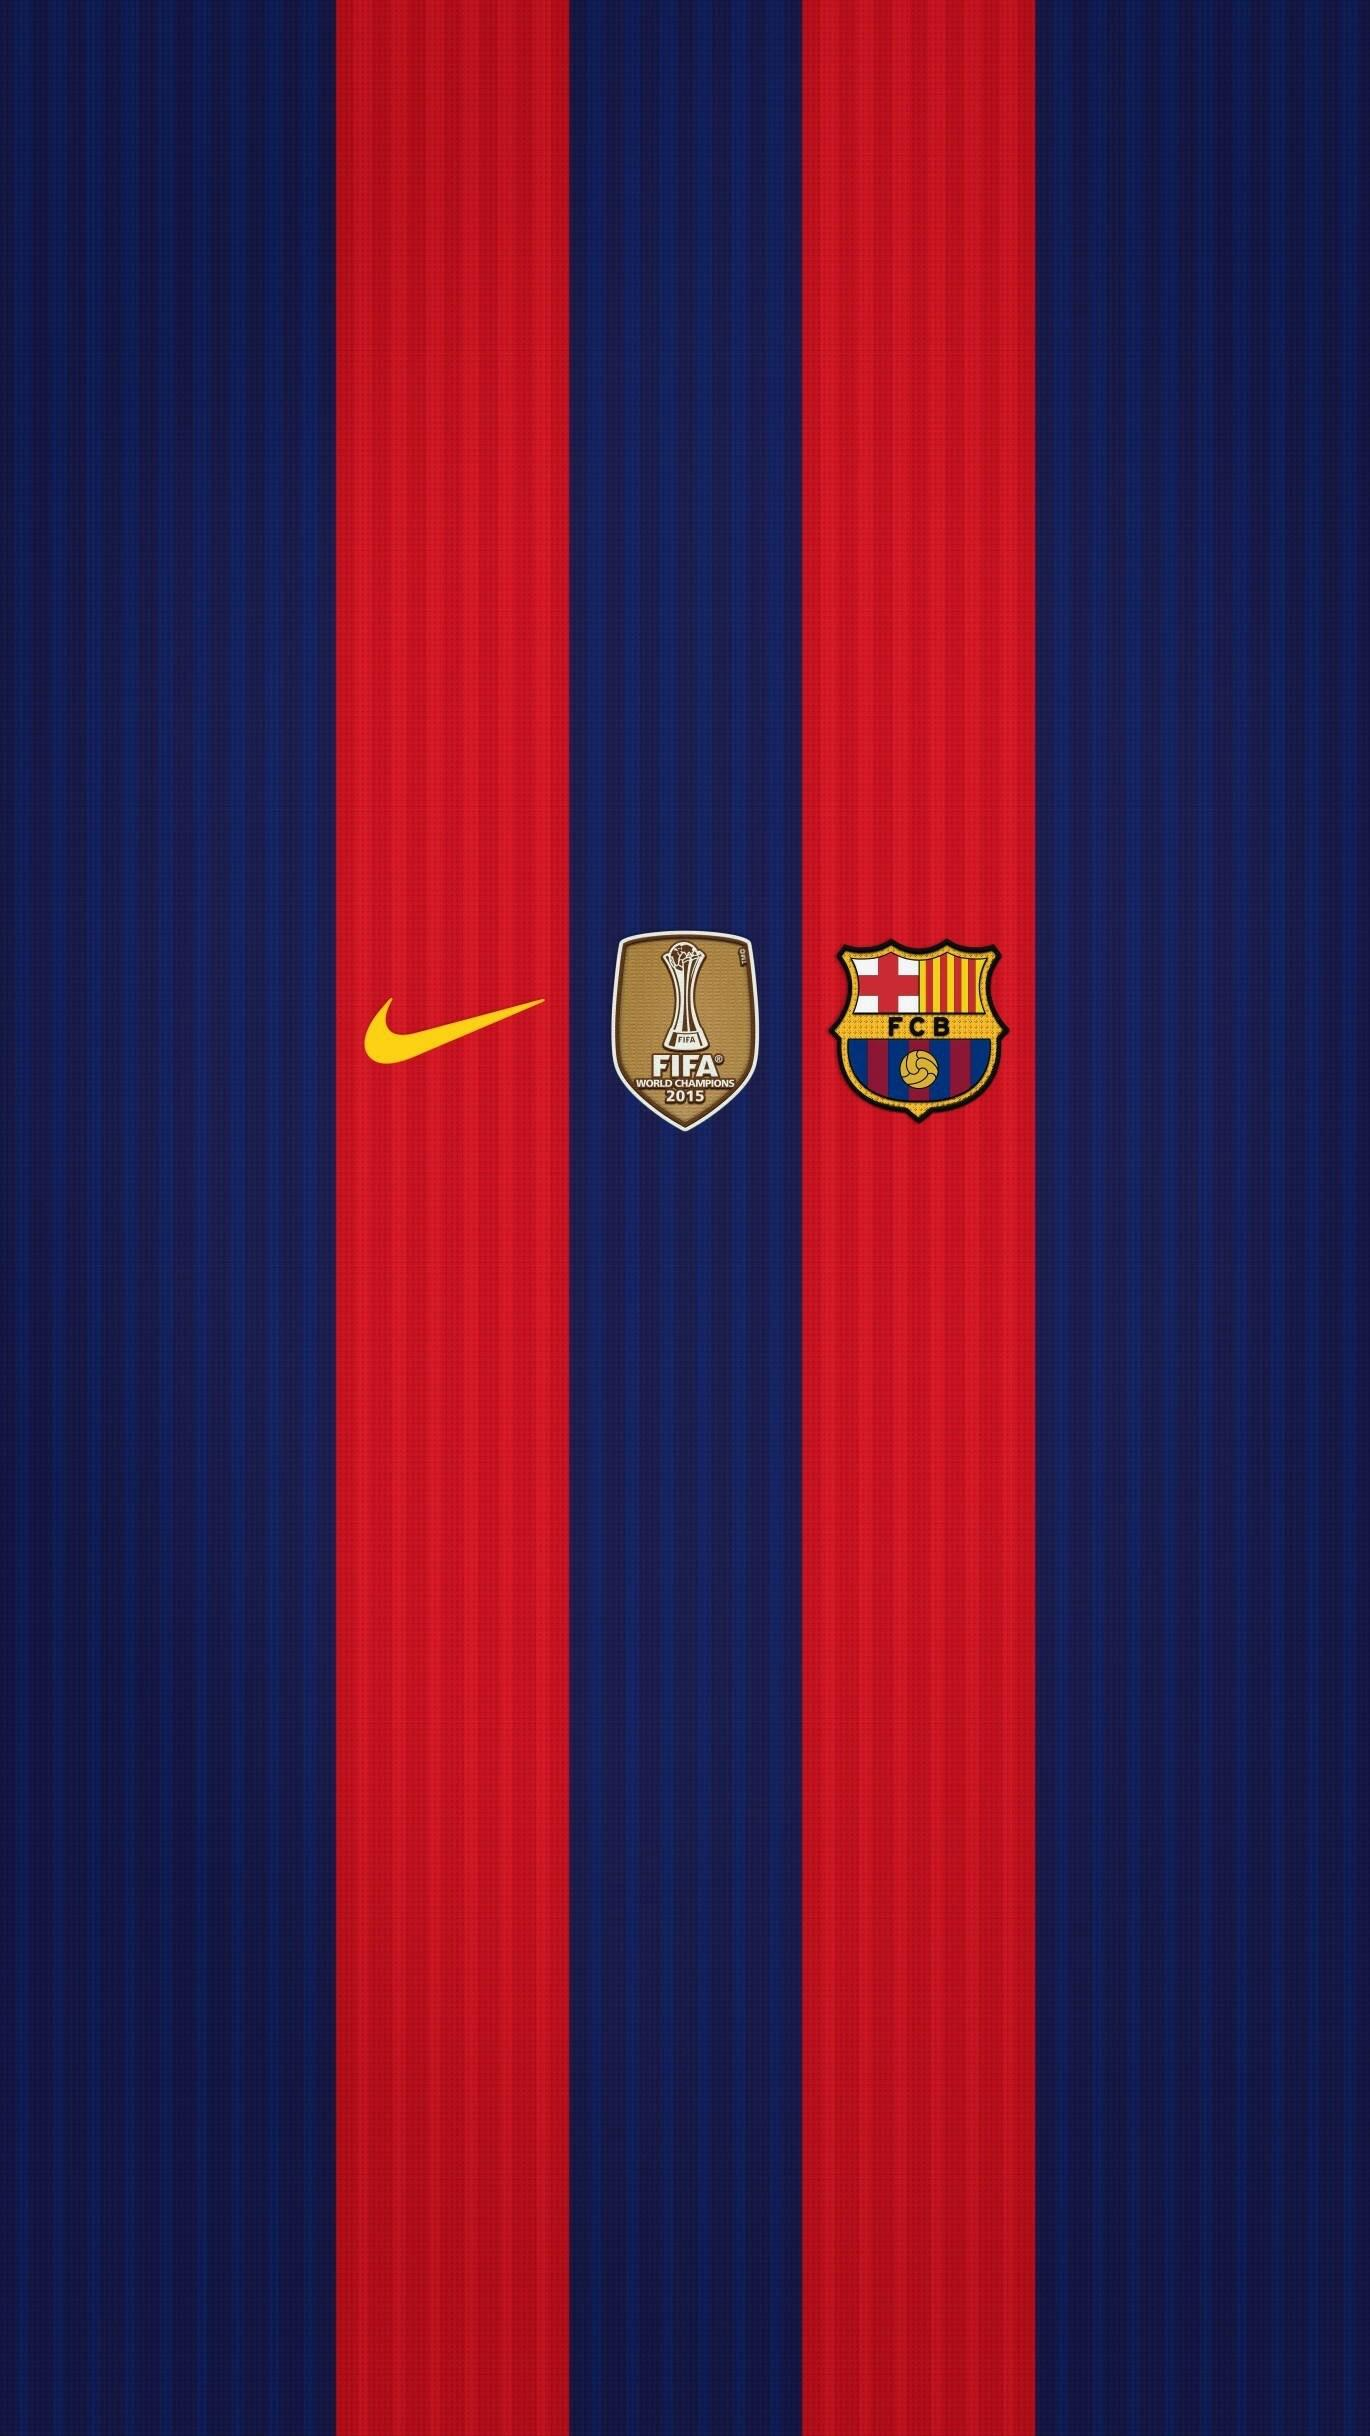 fc barcelona phone wallpaper group hd avante biz